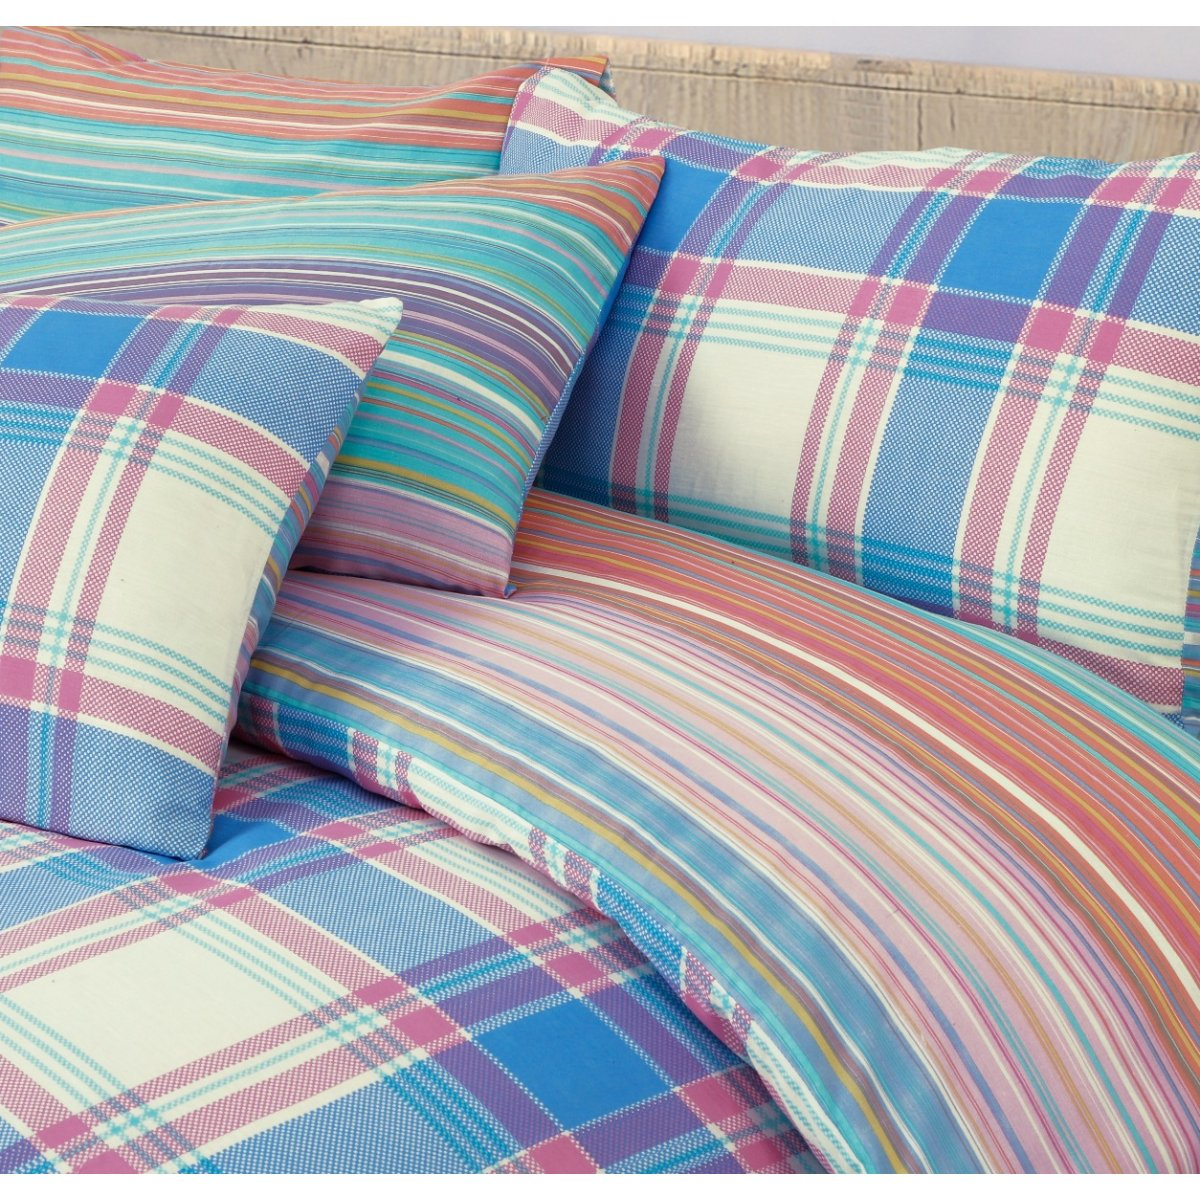 Ombre Check Brights Bedding - Reversible Duvet Cover and Pillowcase Set